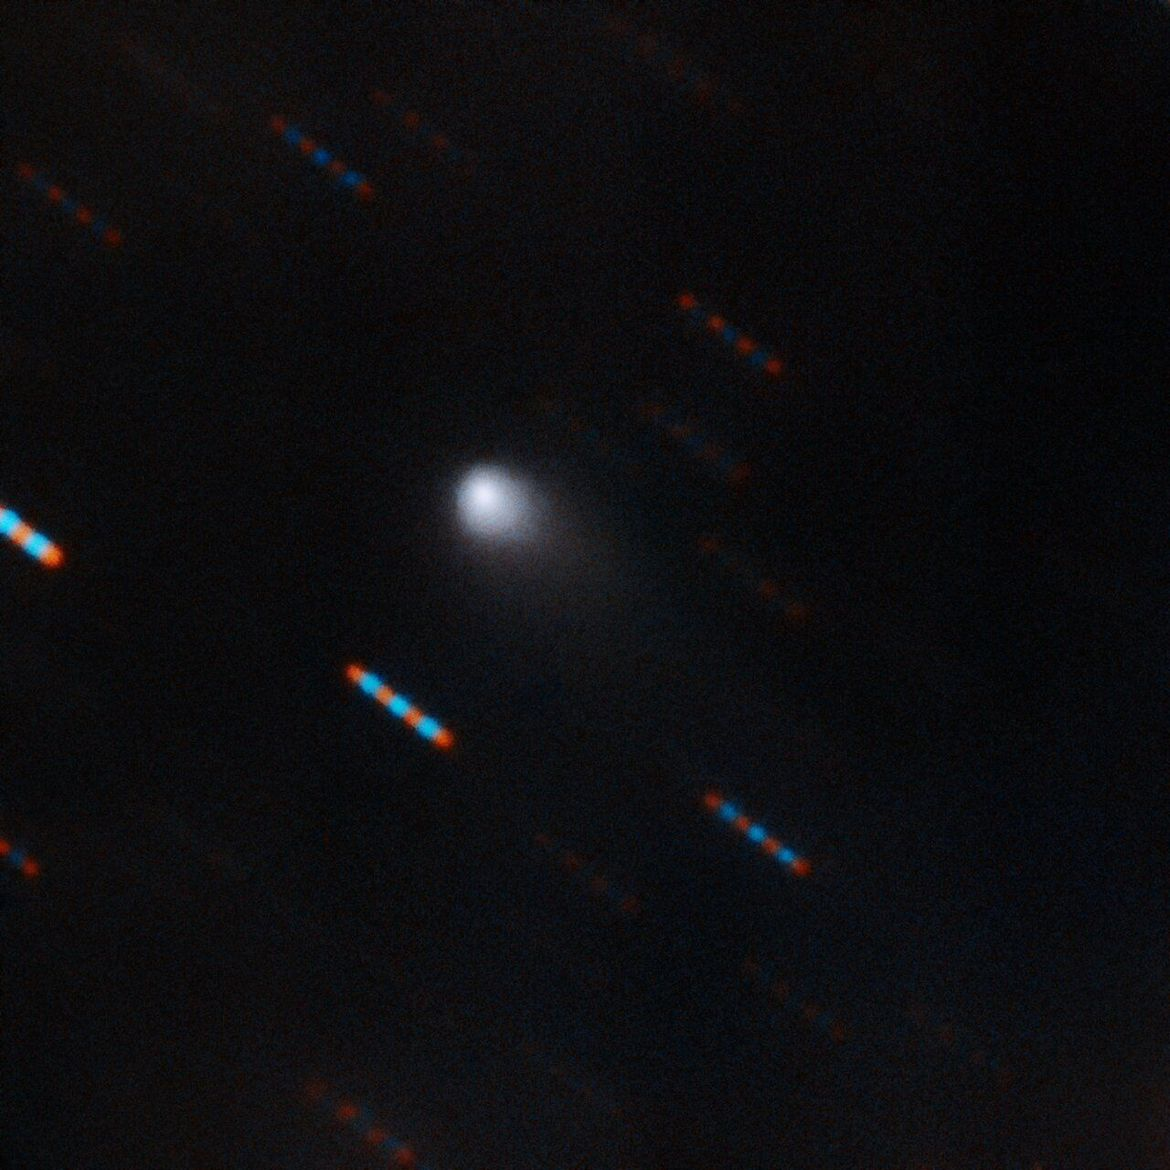 The interstellar comet 2I/Borisov imaged by the massive Gemini telescope on 9-10 September 2019. The telescope tracked the comet and took several images in red and blue filters, so the stars appear as a trail of multi-colored dots.